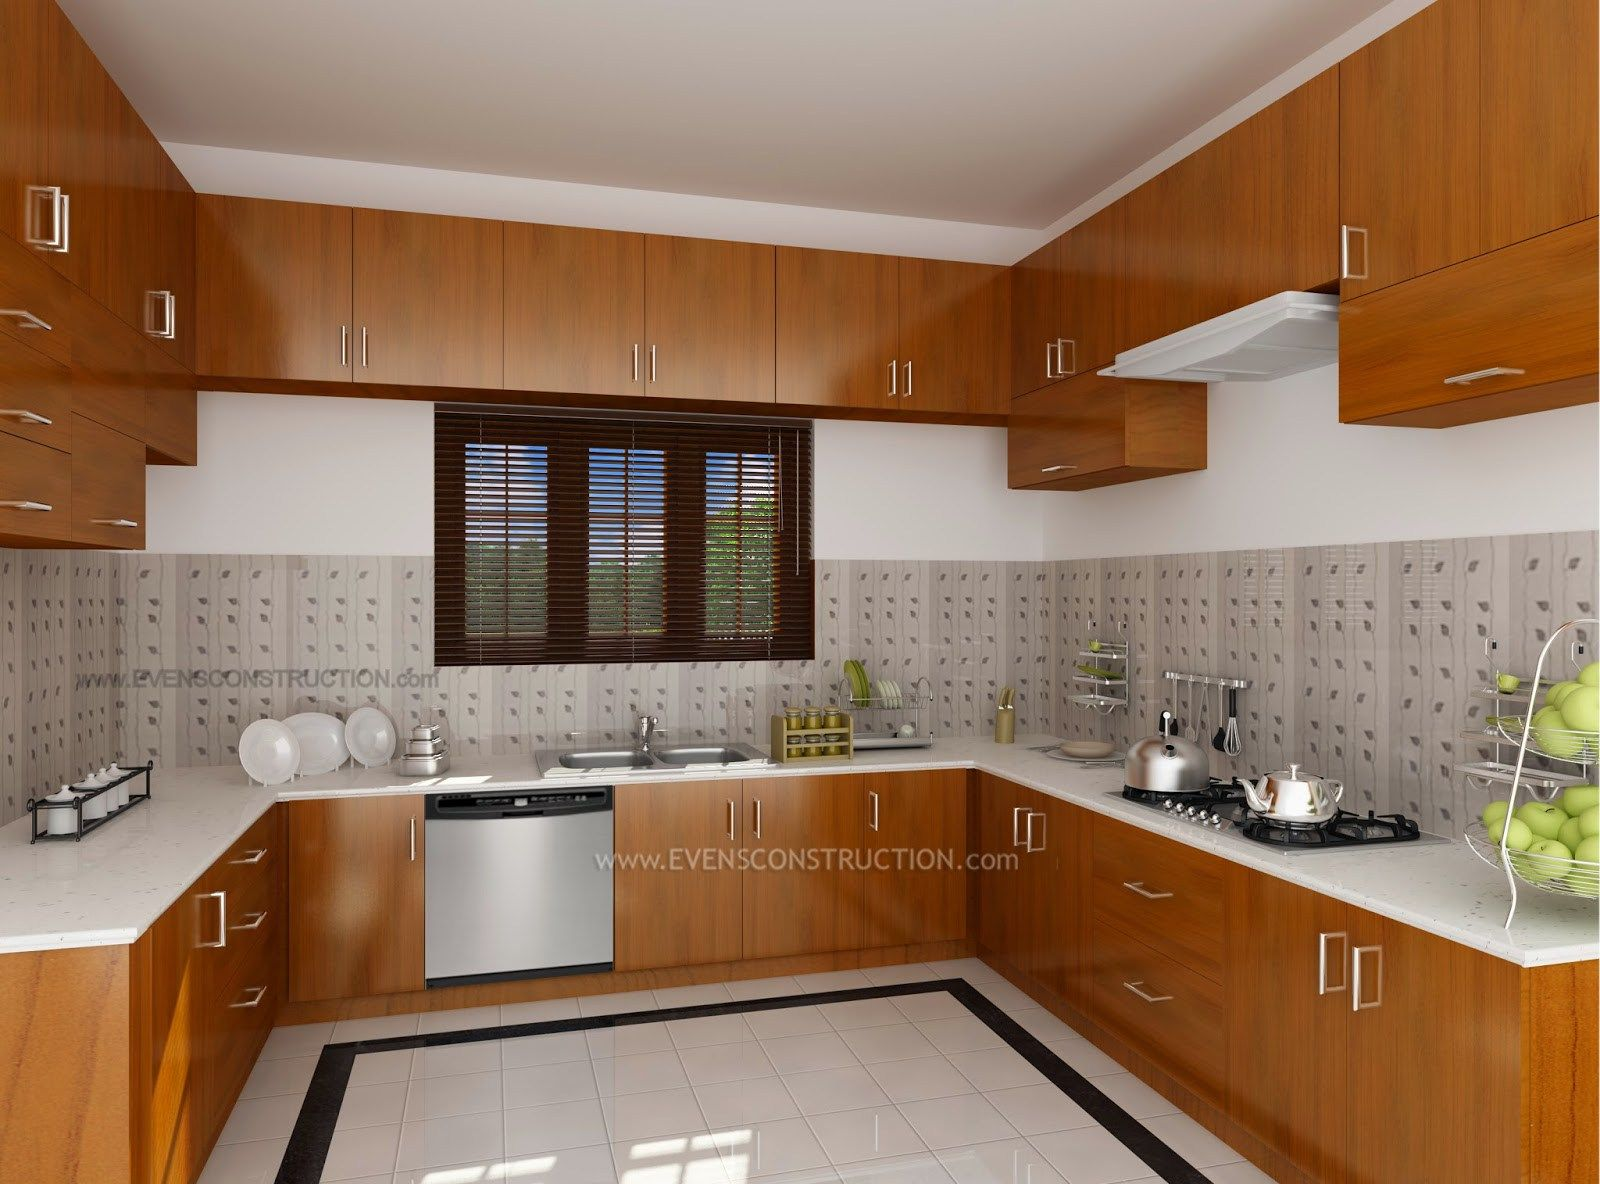 Design interior kitchen home kerala modern house kitchen for Amazing interior design ideas